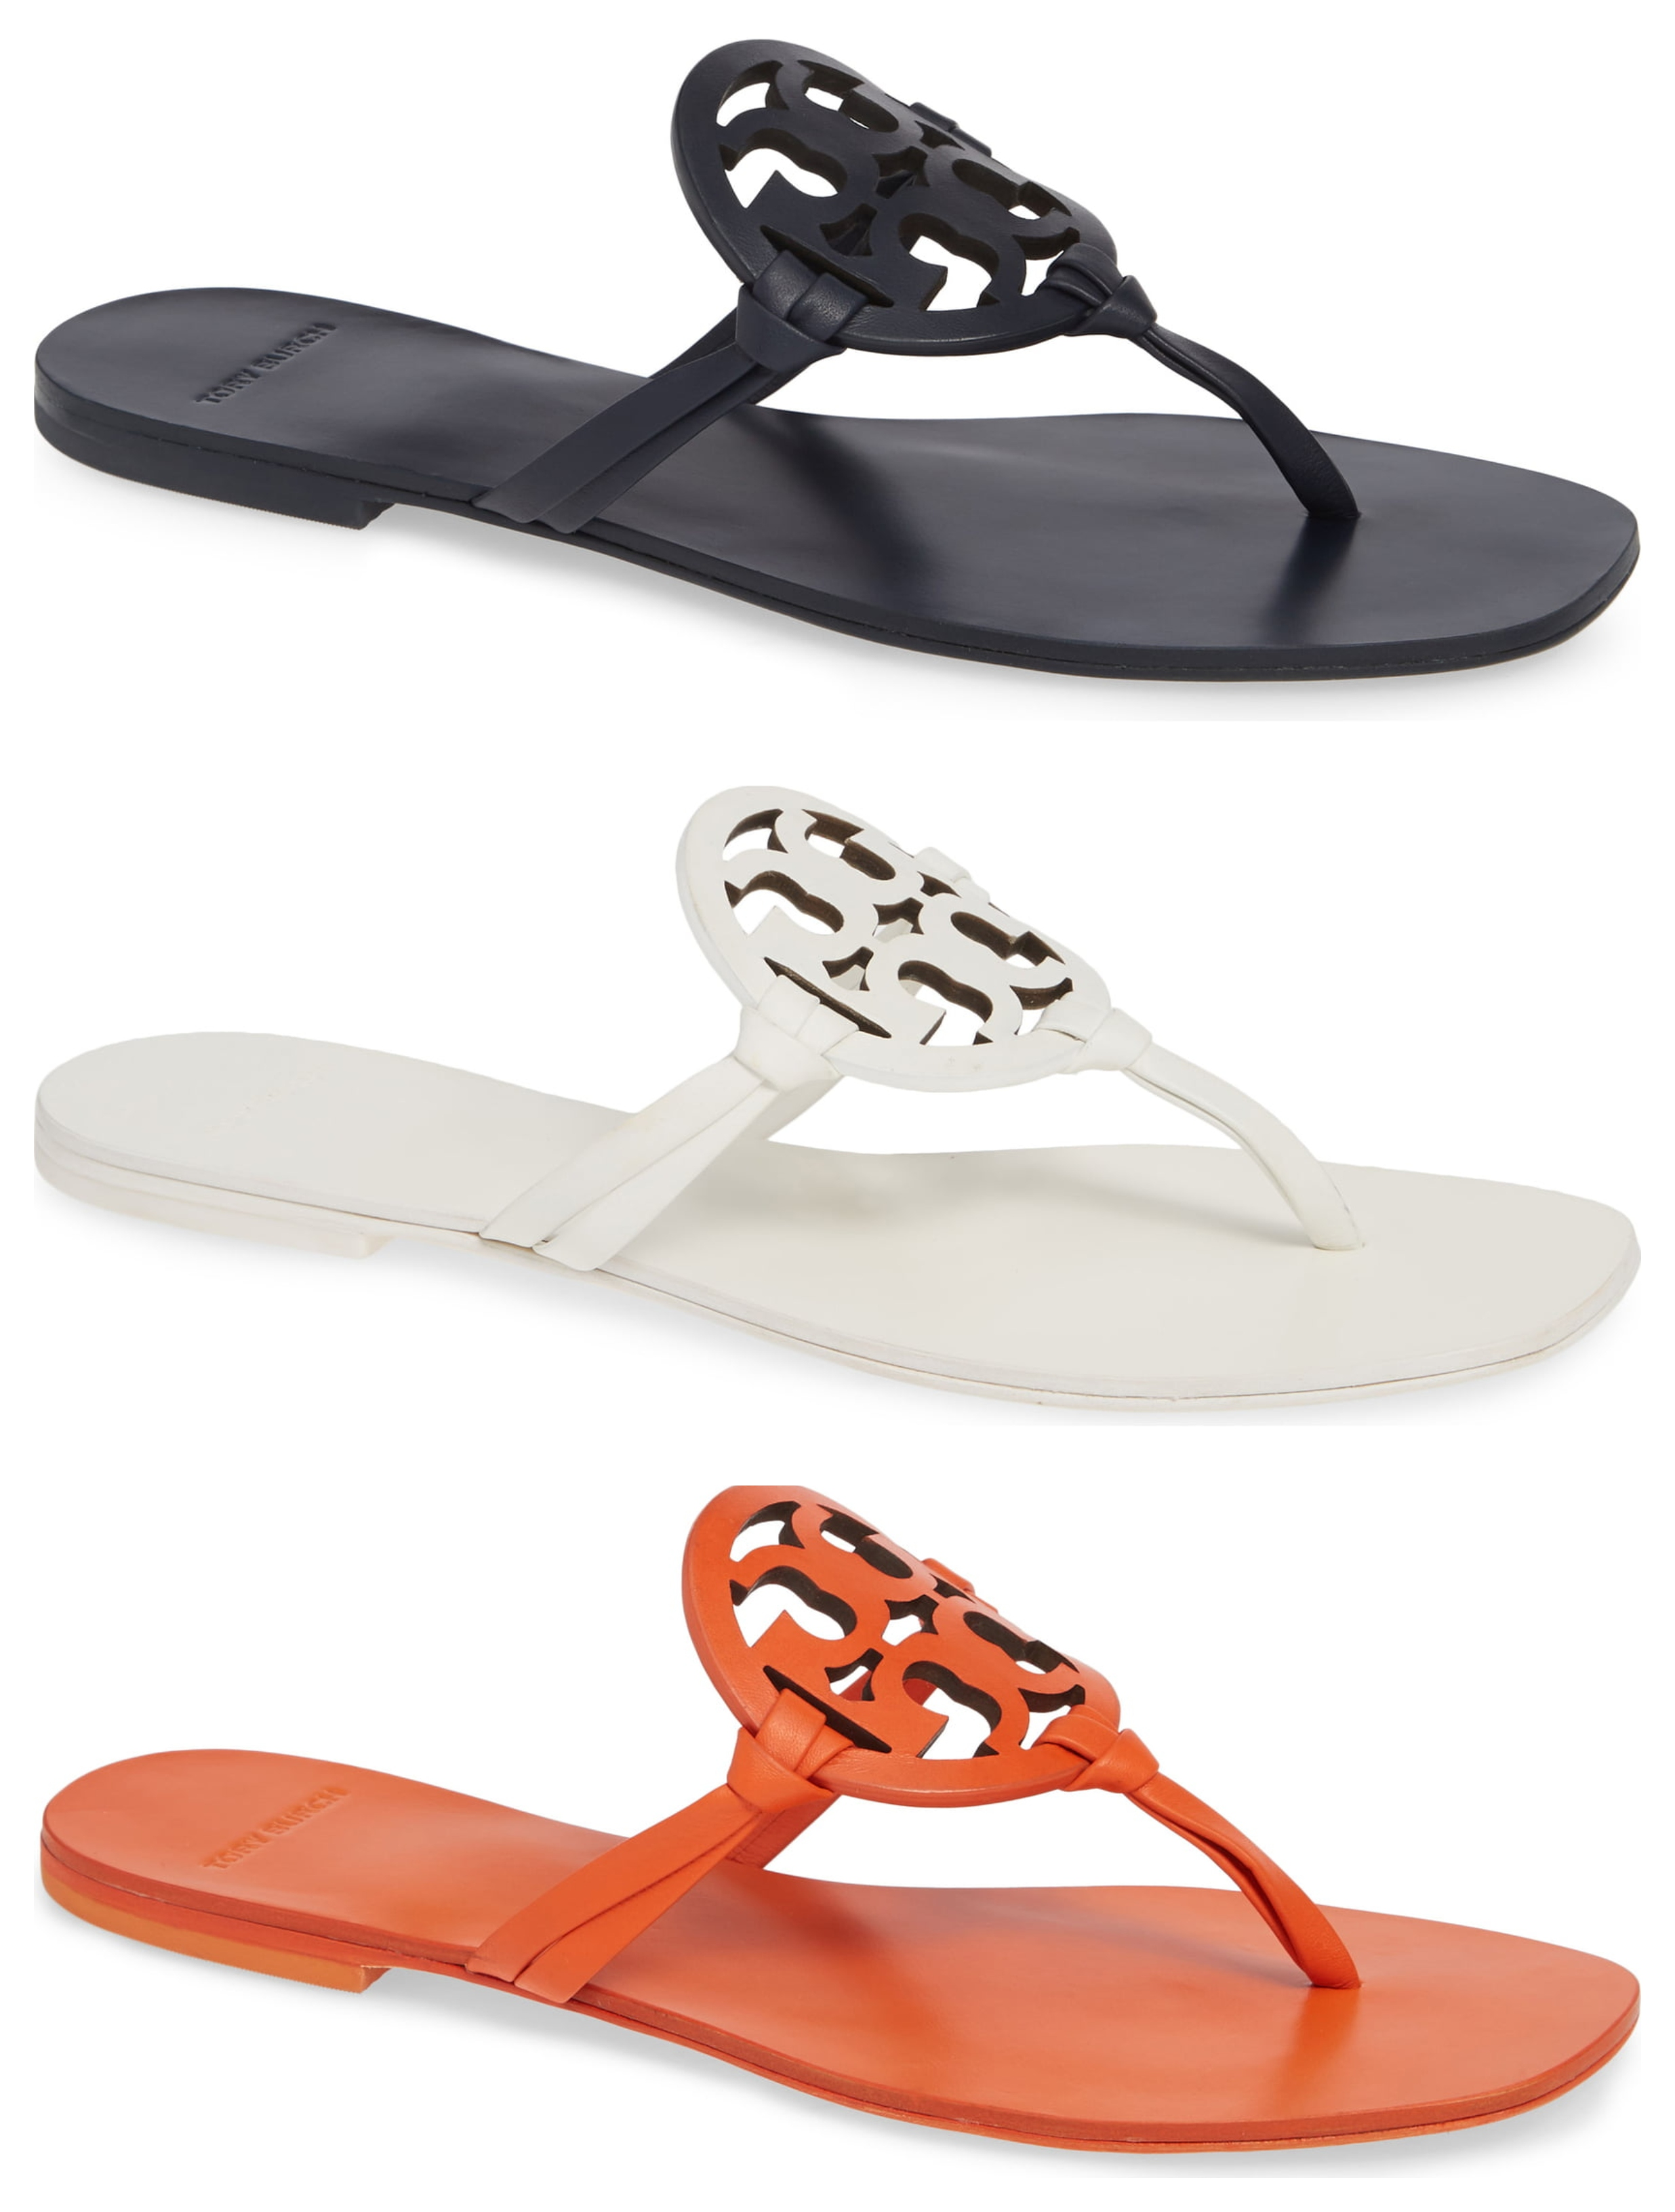 4e899f823 Nordstrom  33% Off Tory Burch Sandals + Free Shipping! – Wear It For ...